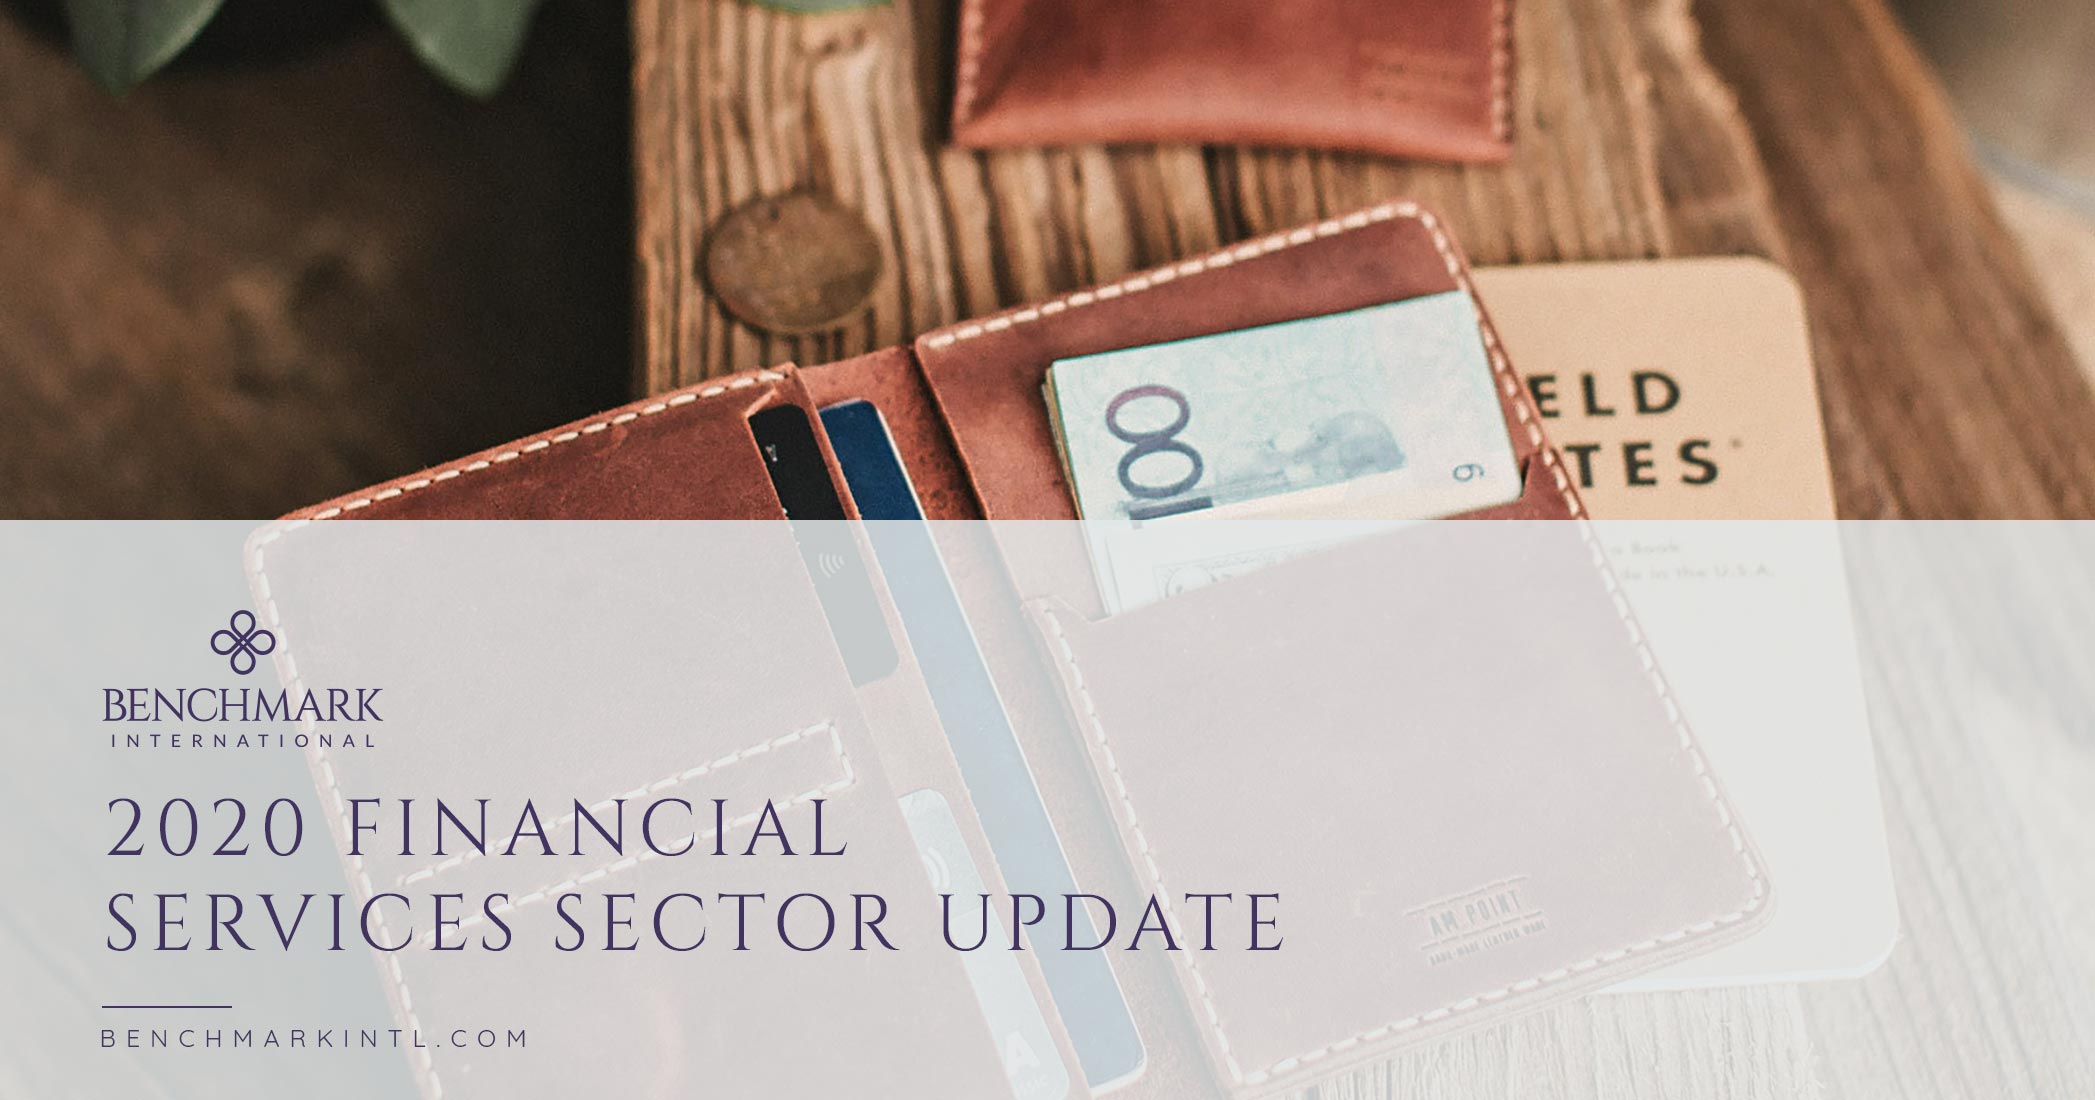 2020 Financial Services Sector Update